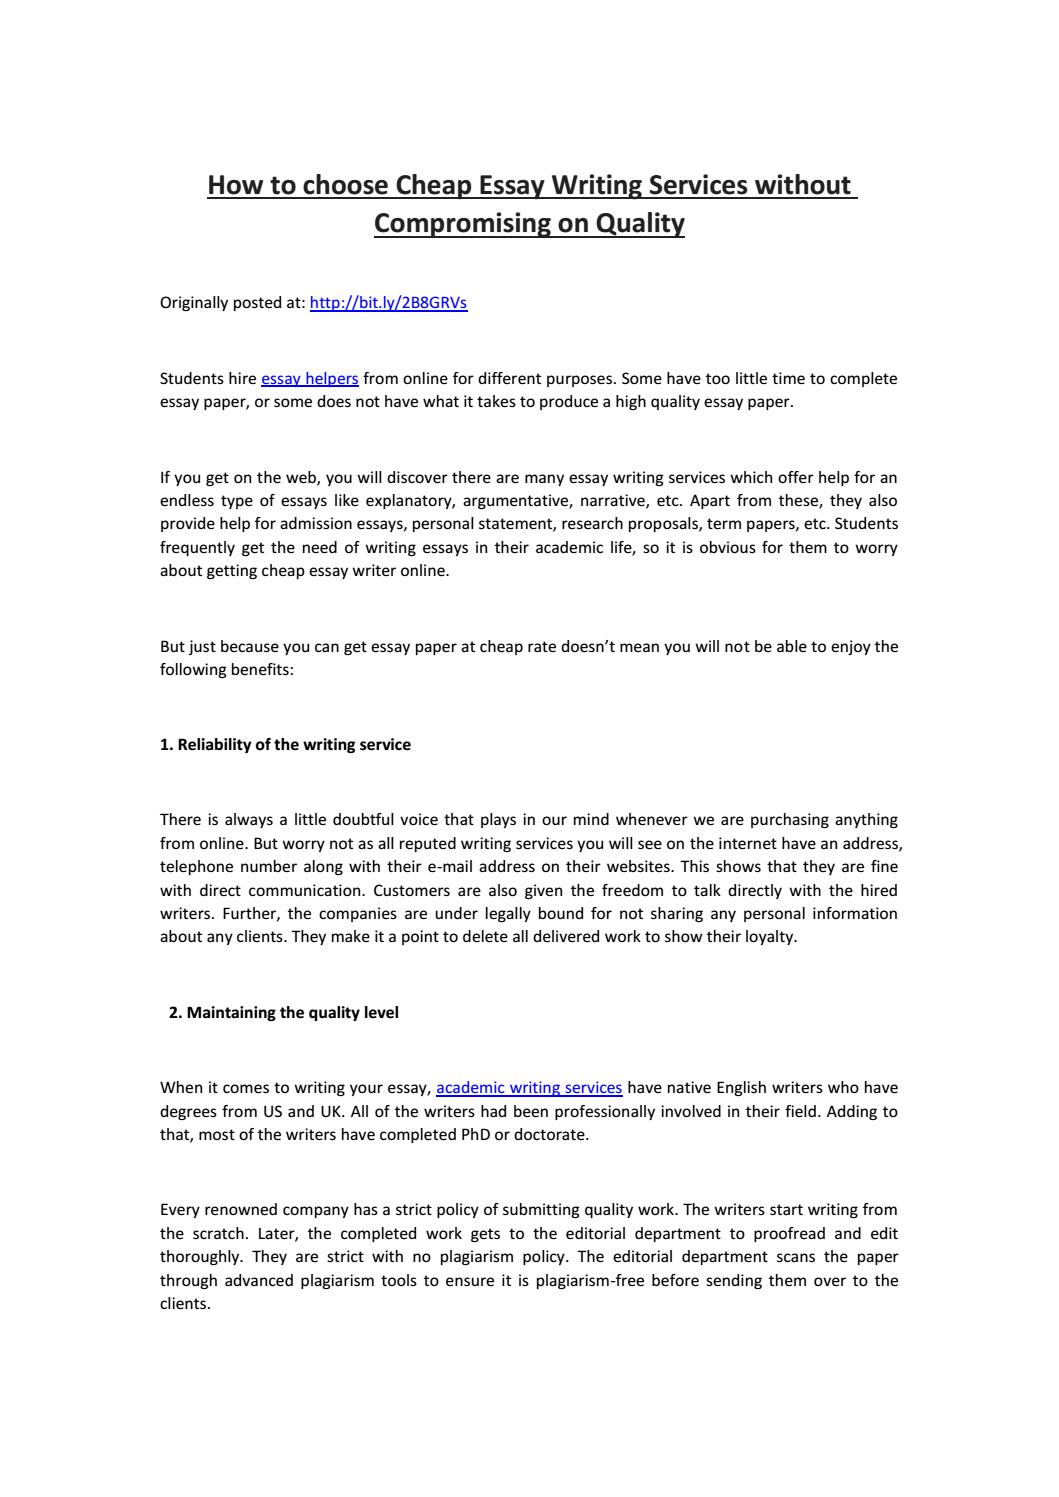 Cheap persuasive essay editing for hire us research paper method section